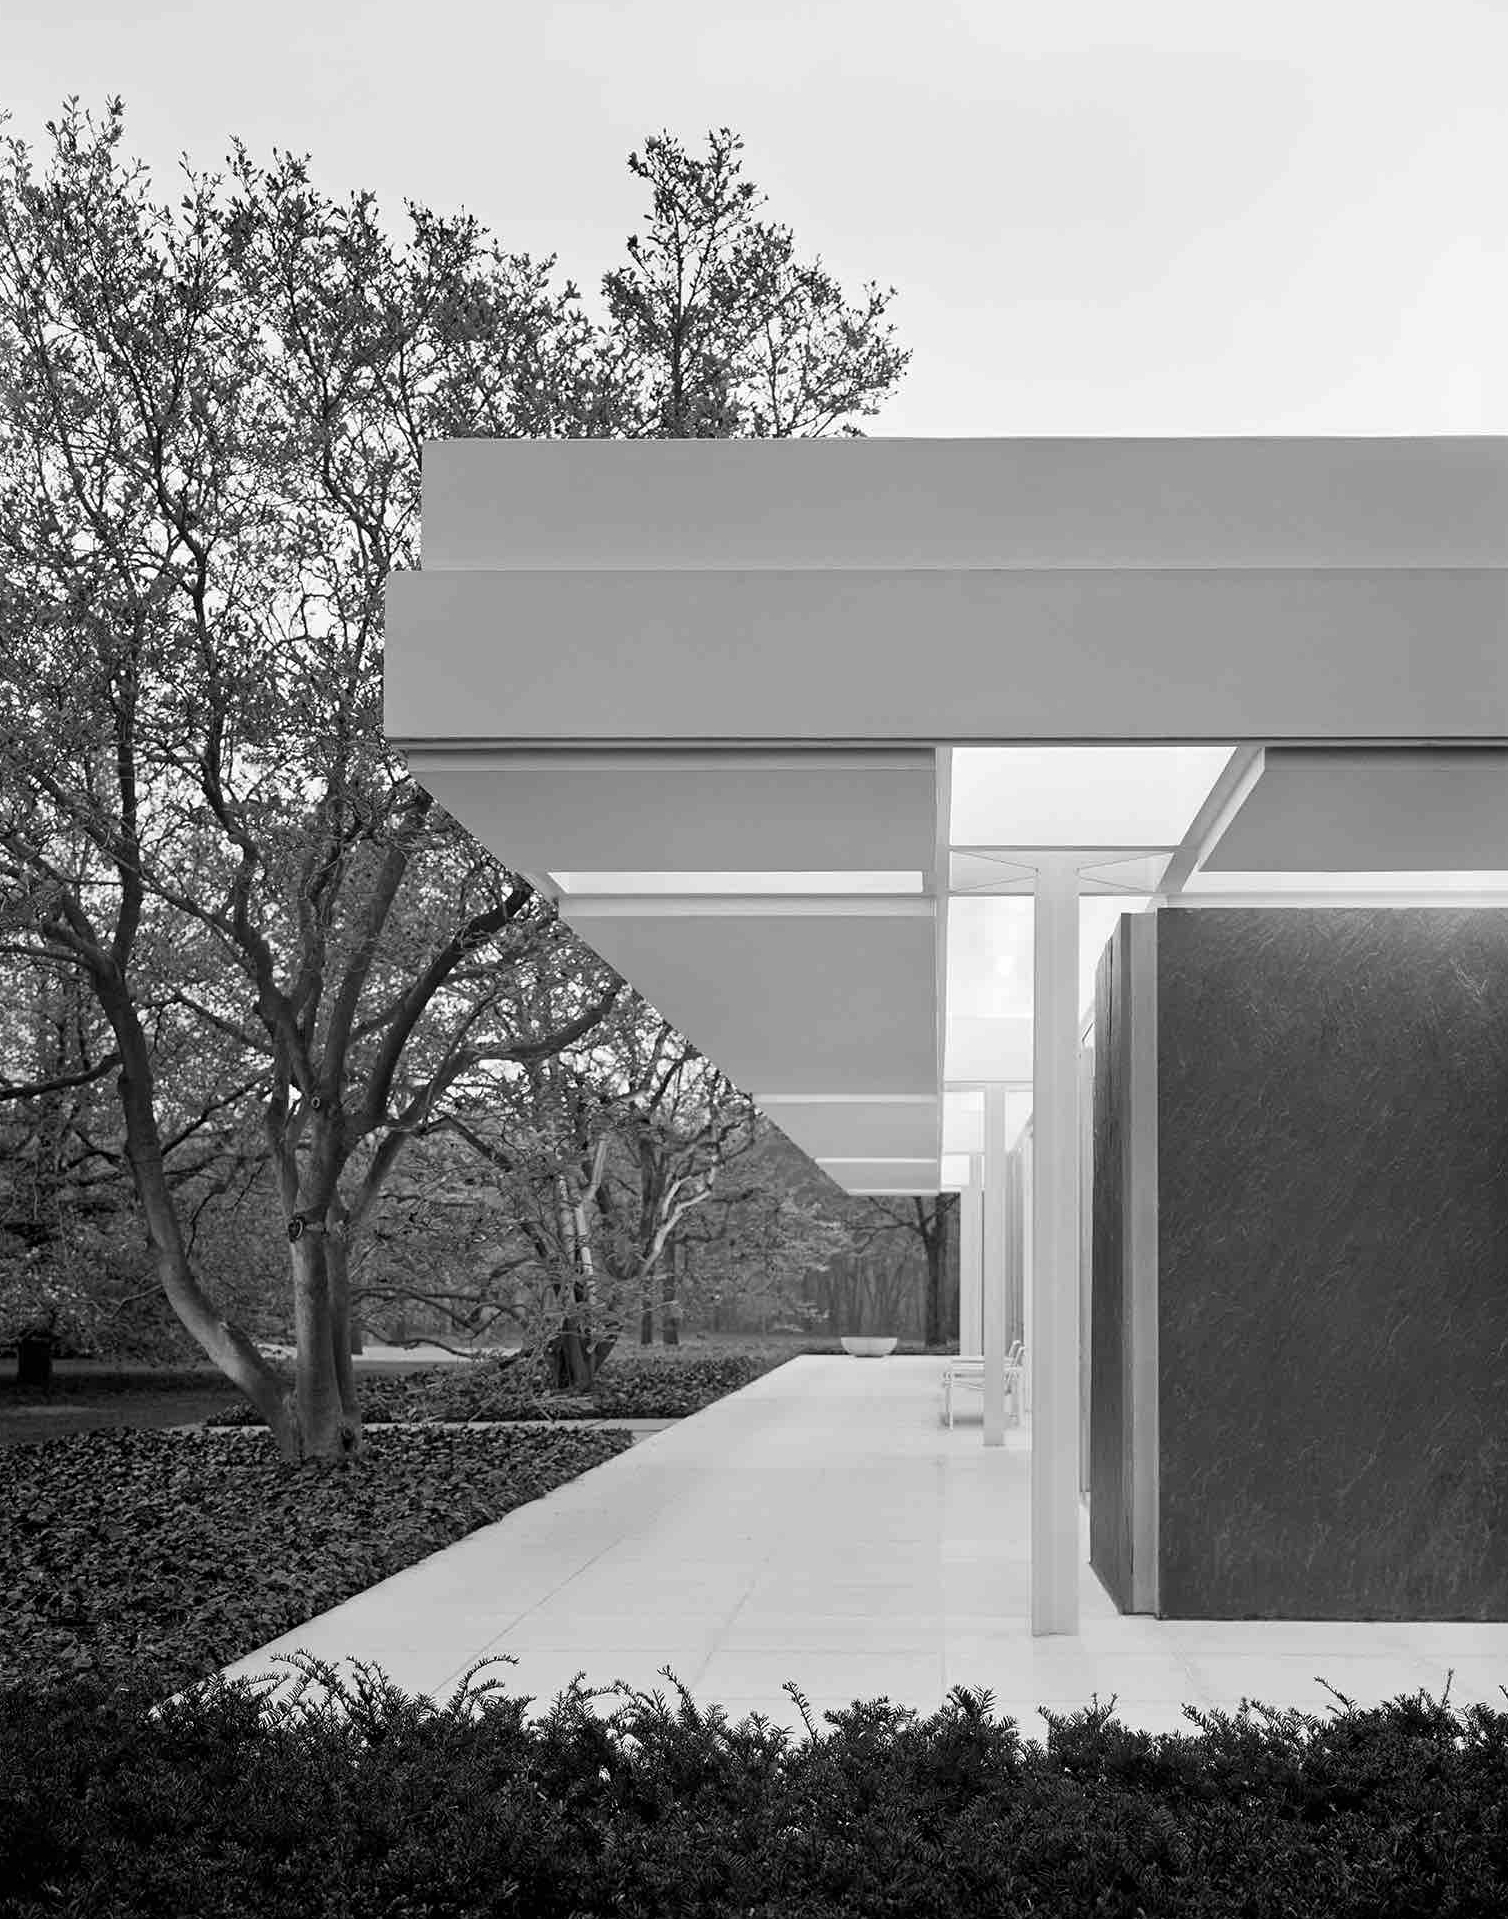 Eero Saarinen, The J. Irwin and Xenia Miller House (Columbus, IN) 1957